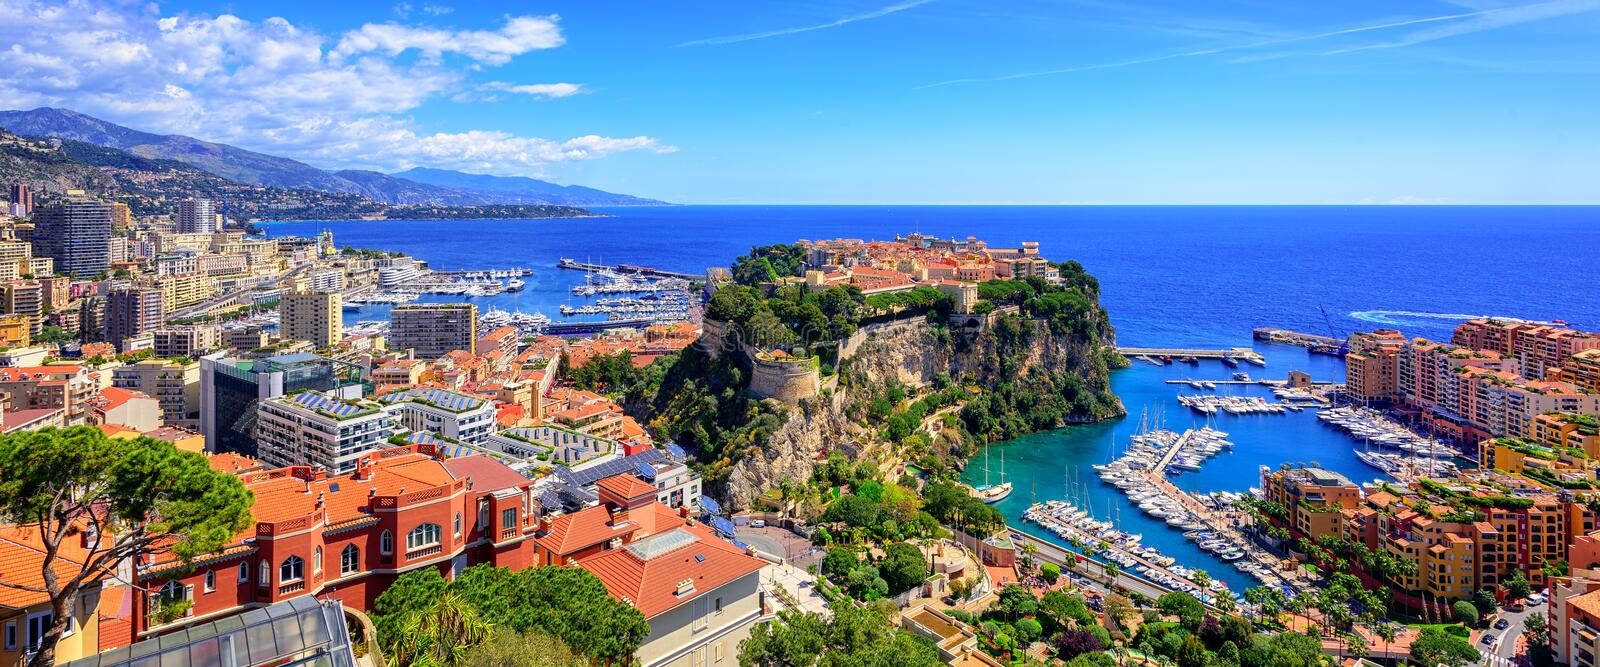 Skyline of Monaco with Prince Palace, old town and port. Panoramic view of Monaco and Monte Carlo with the od town, port and Prince's Palace royalty free stock photo